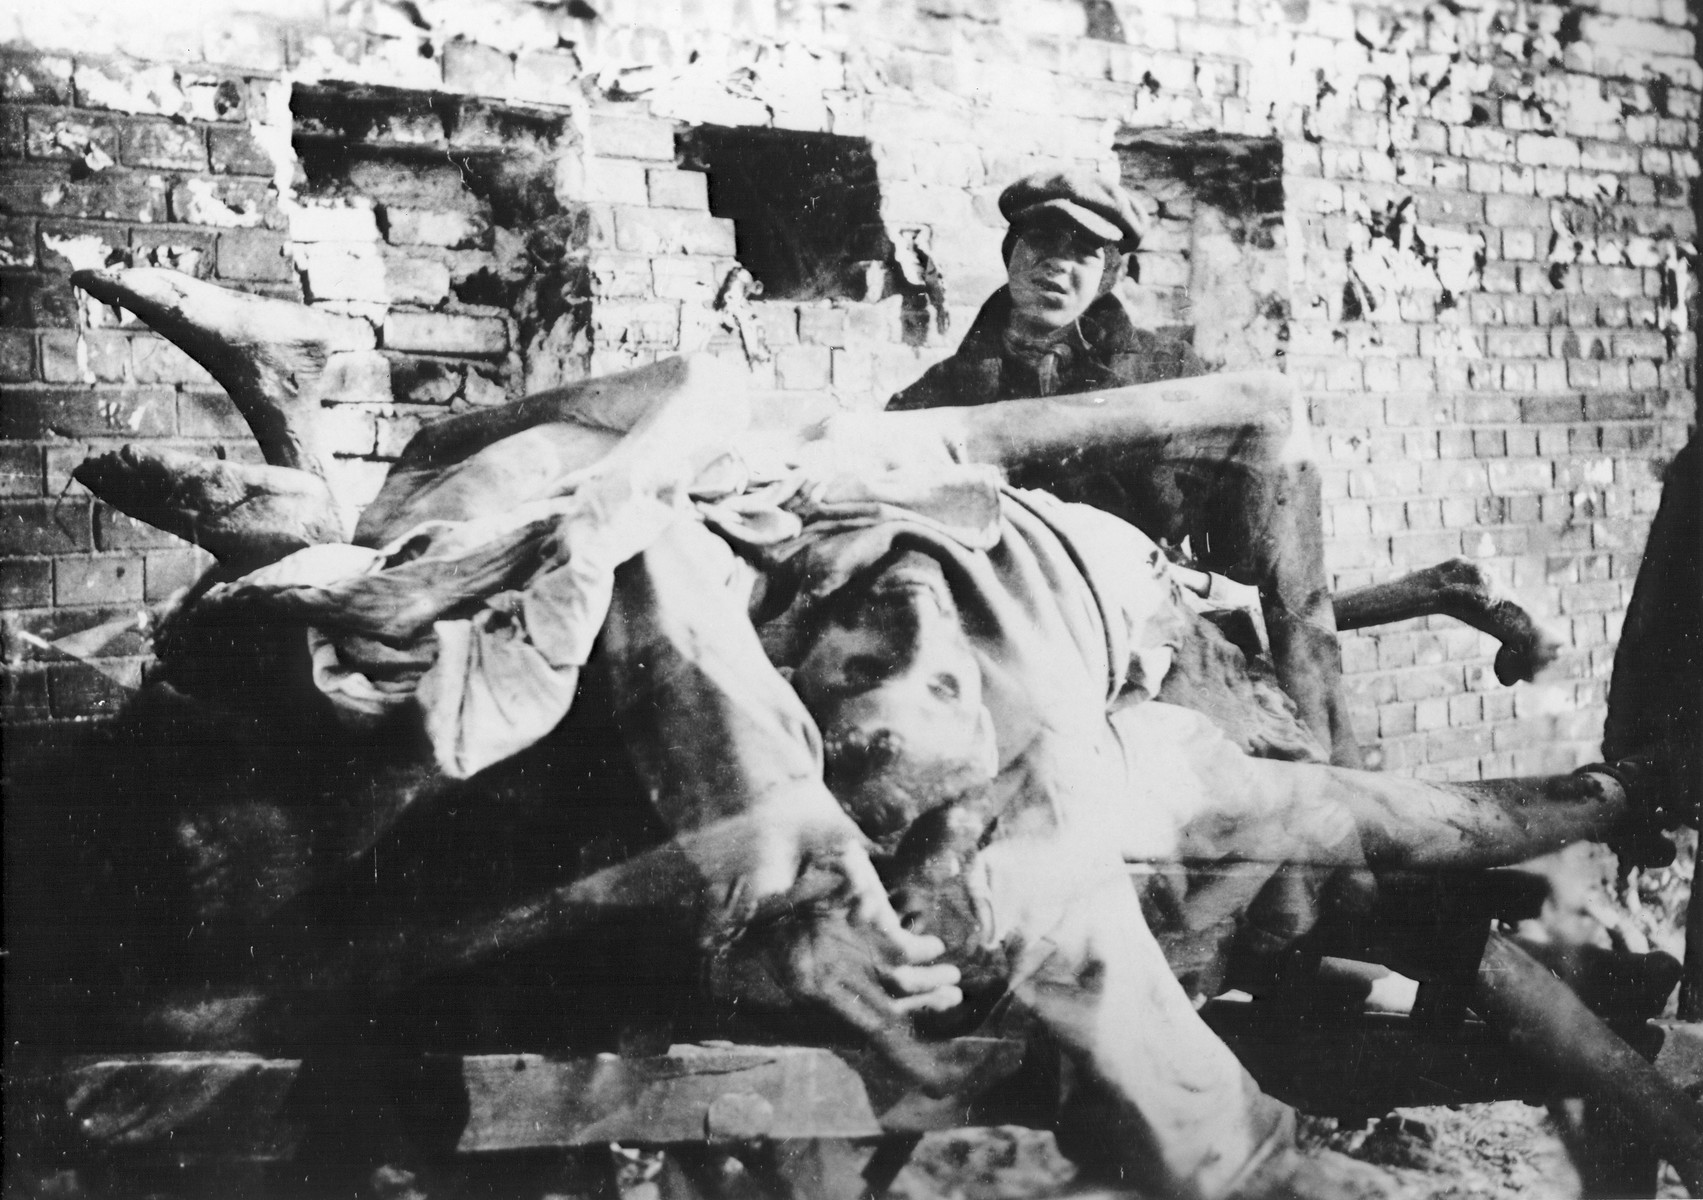 The bodies of Jews who died of hunger and disease in the Warsaw ghetto are stacked up on a cart prior to being removed for burial.